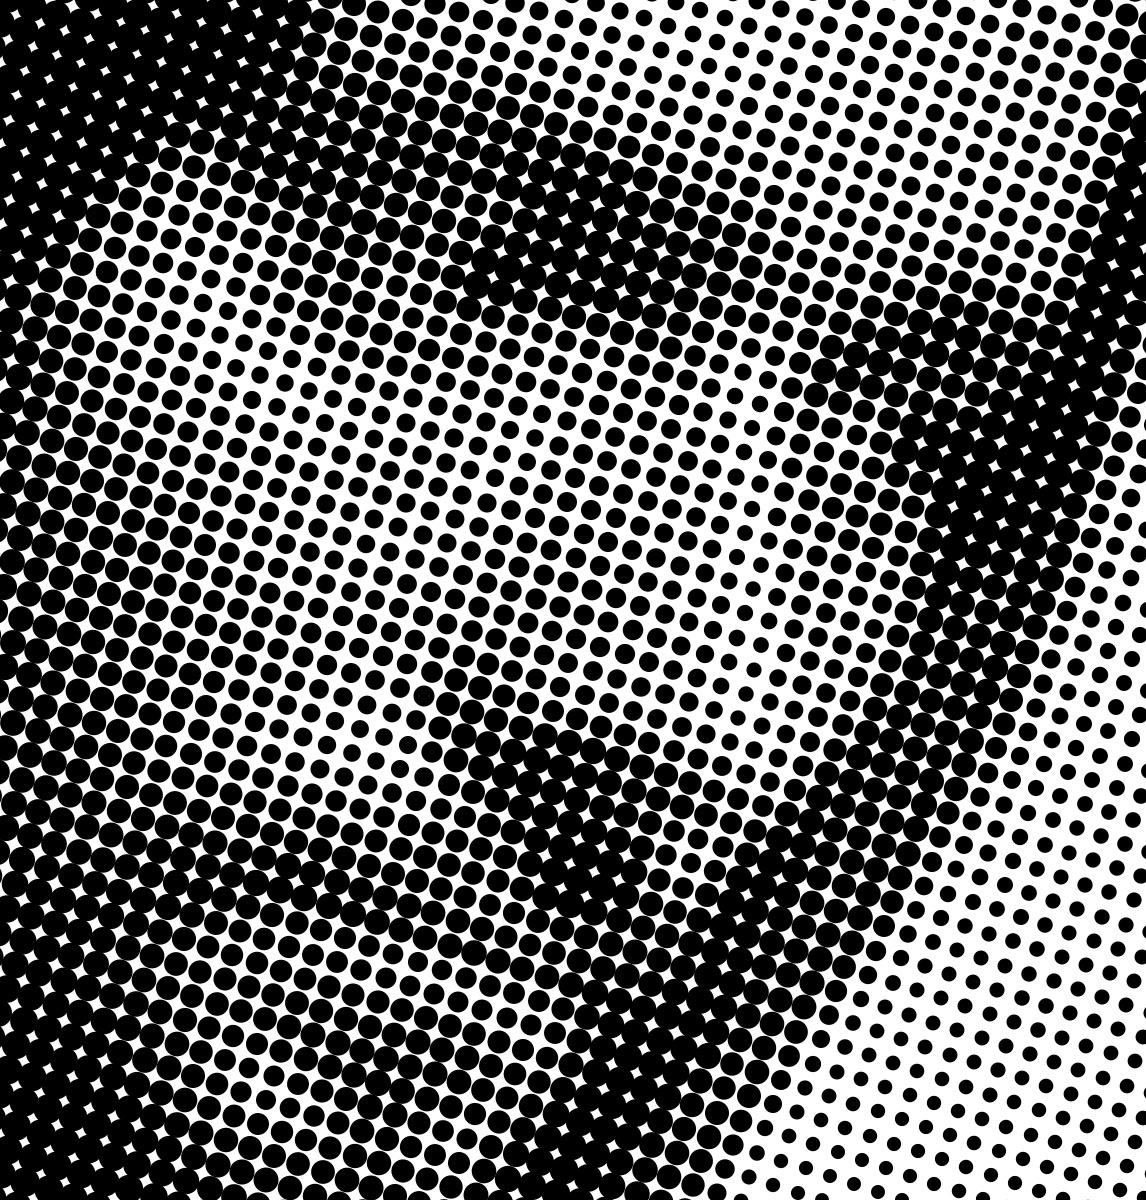 Color halftone printing - Another Option Is To Convert To Grayscale Then Use The Filter Pixilate Color Halftone Command This Will Give You A Different Effect Of Black Dots Than The